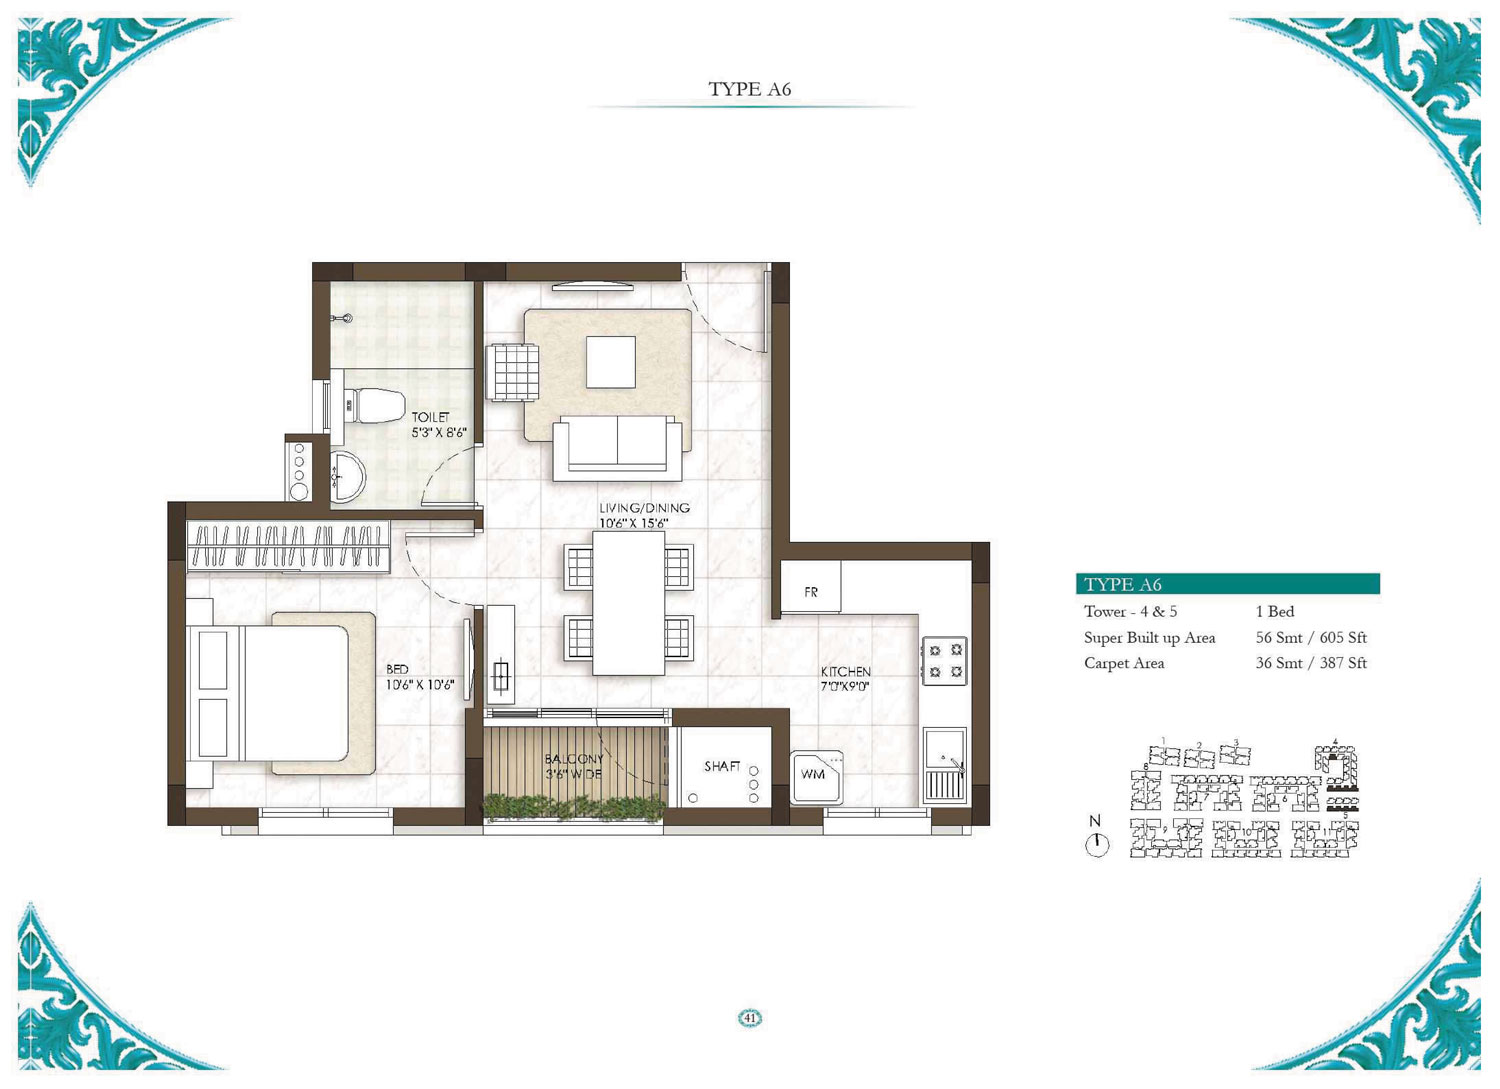 Type A6 - 1 Bed - 605 Sq Ft